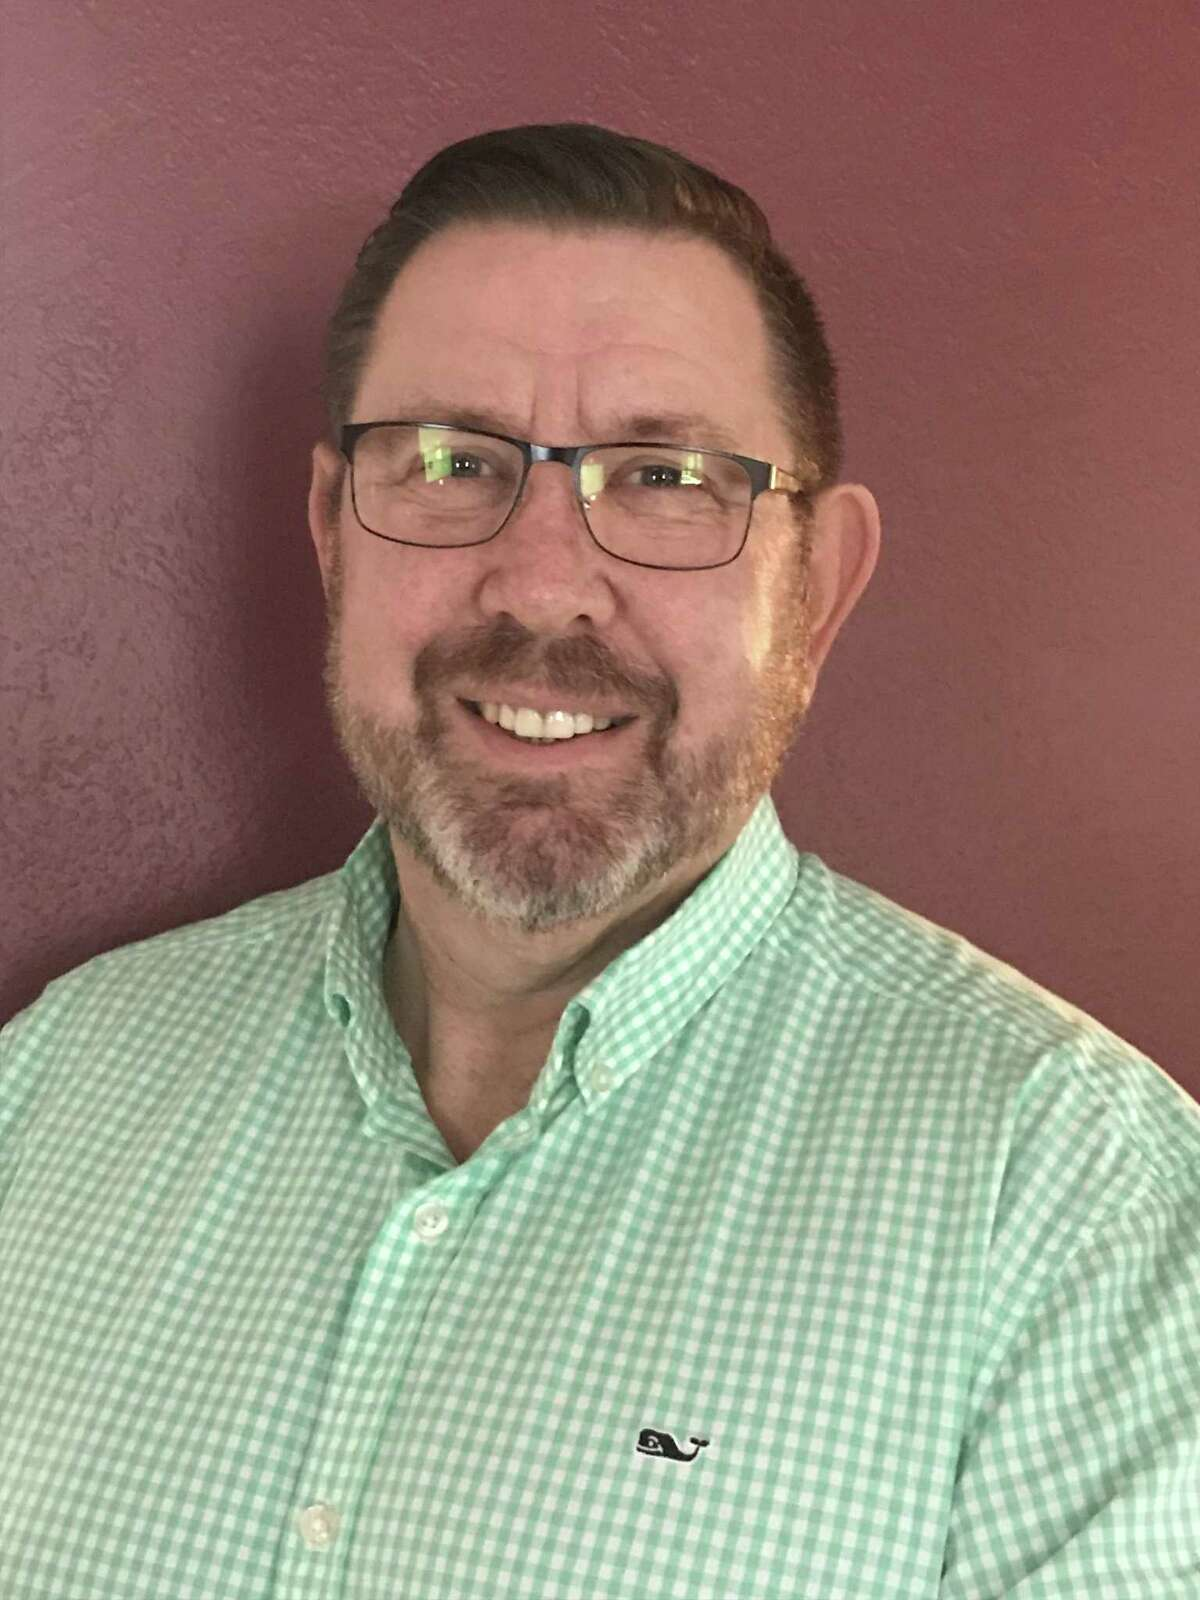 Chris Phipps, an Ansonia school board member, believes the time has come for both the city and school board to end the divisiveness and work together.